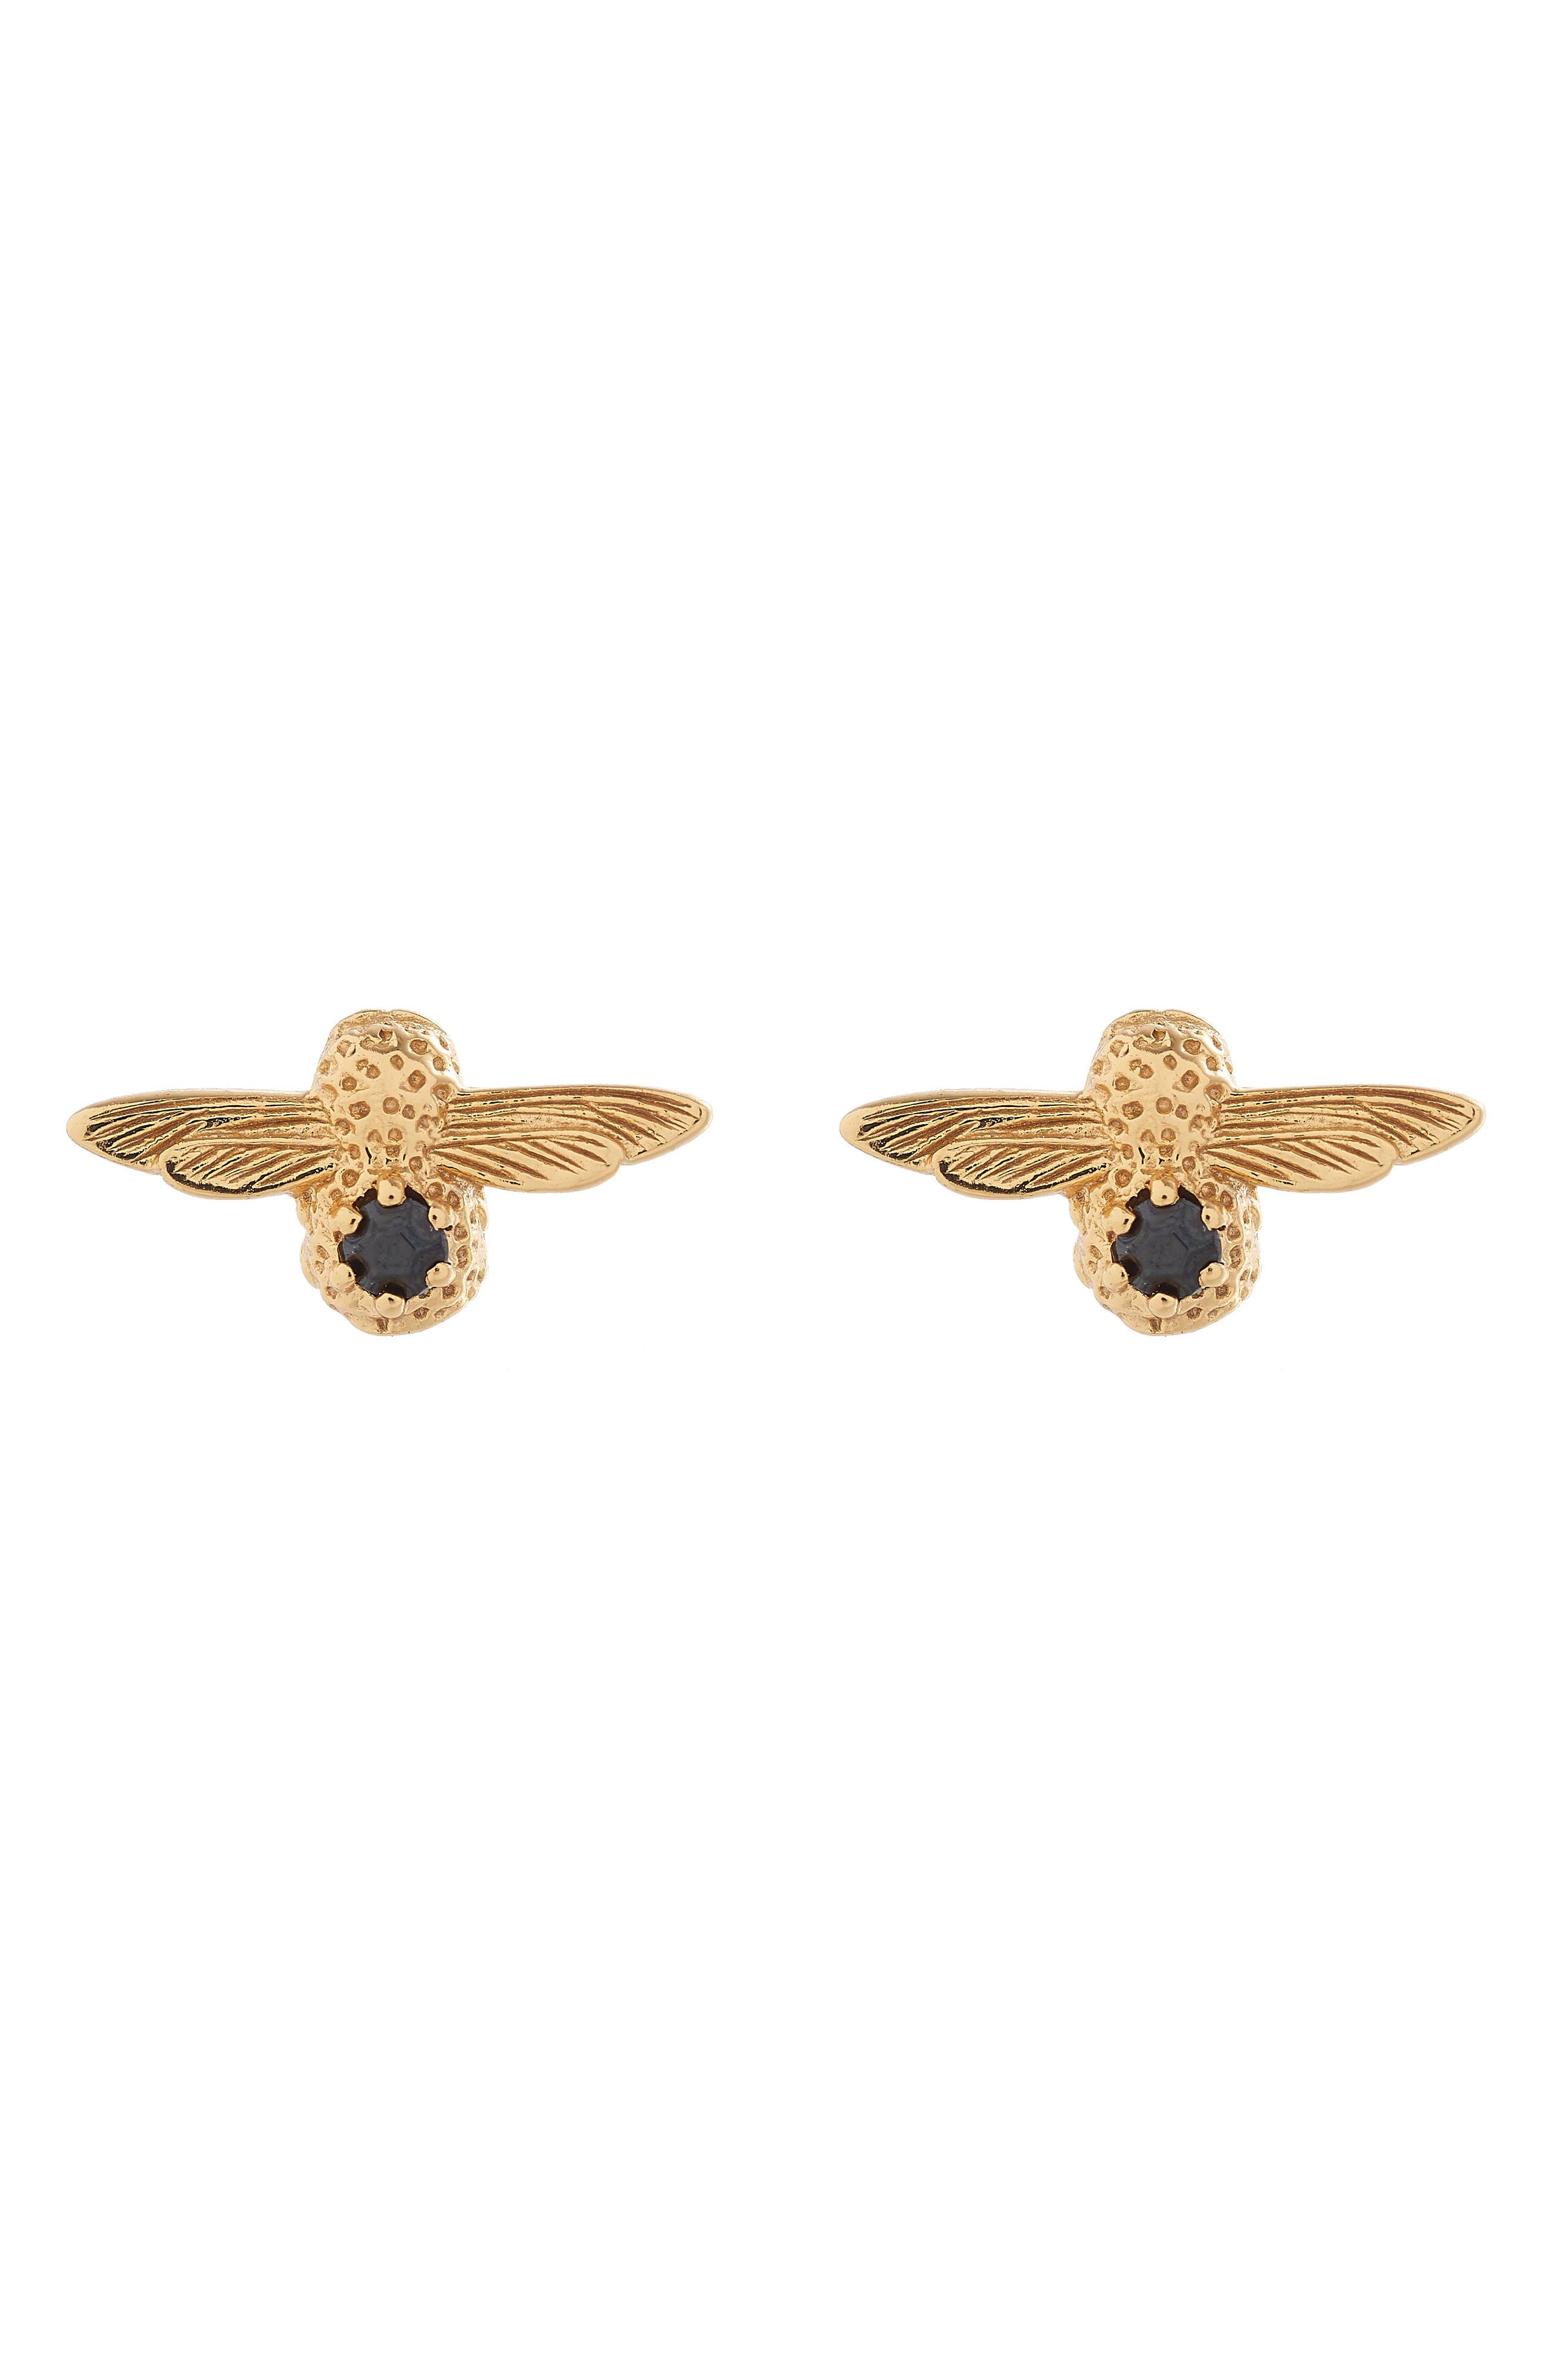 3D Bejeweled Bee Stud Earrings,                             Main thumbnail 1, color,                             Two Tone- Gold / Black Onyx